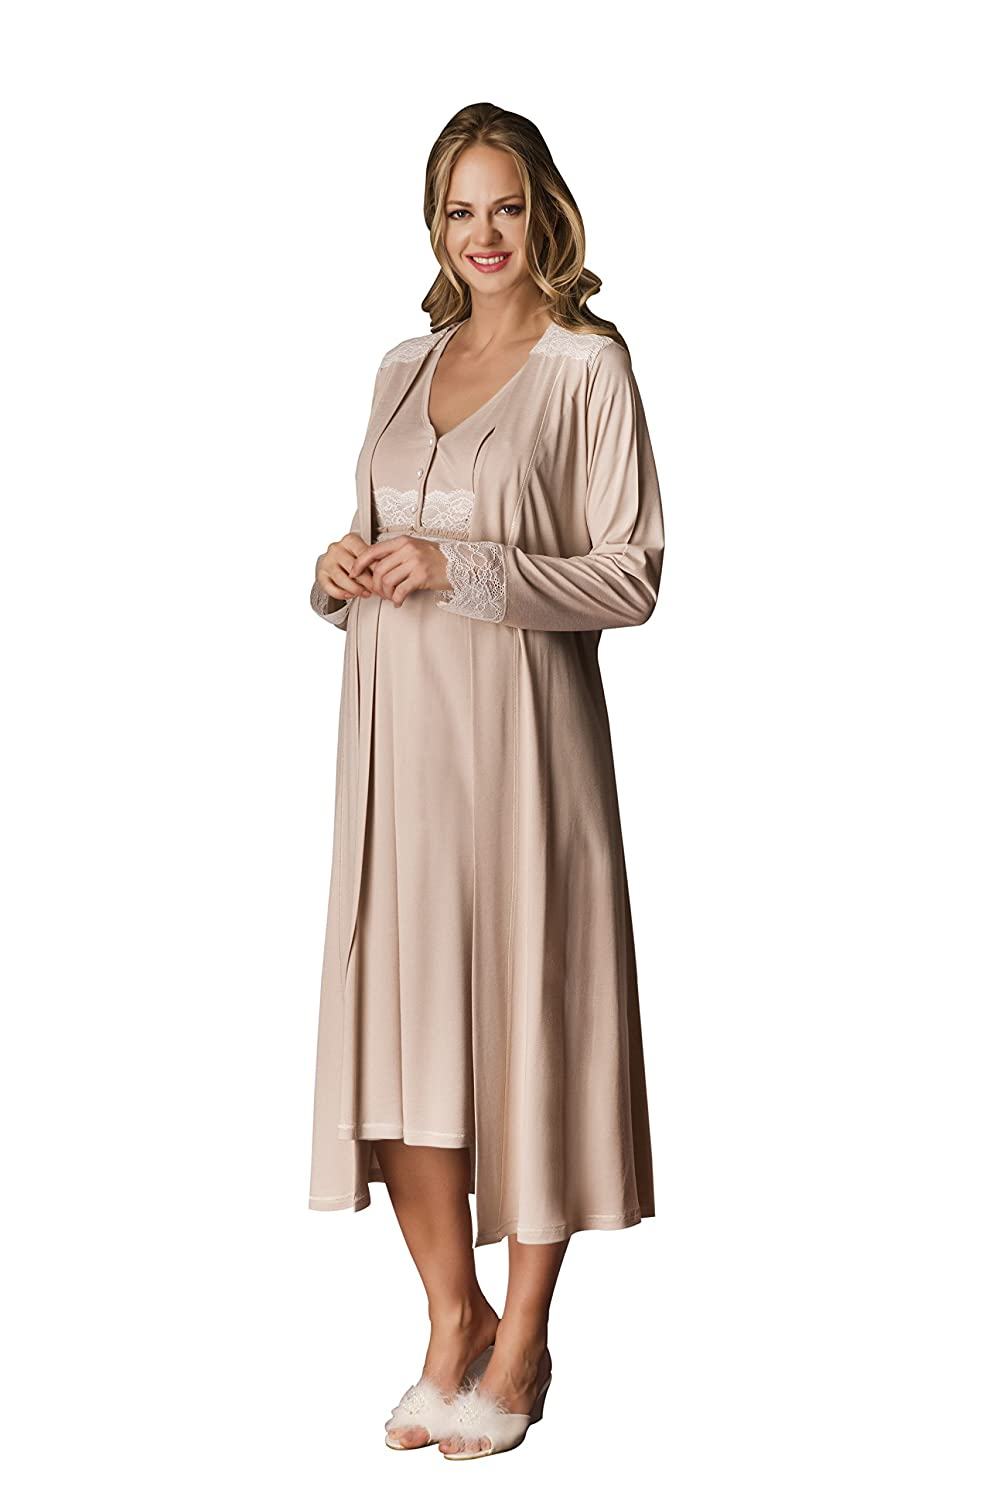 abb3155ee6c MATERNITY AND NURSING  This Elegant Nightgown PJ Set was Specifically  Designed for Expecting   Nursing Moms. Super Soft Dress with Lace Details  and Pearl ...